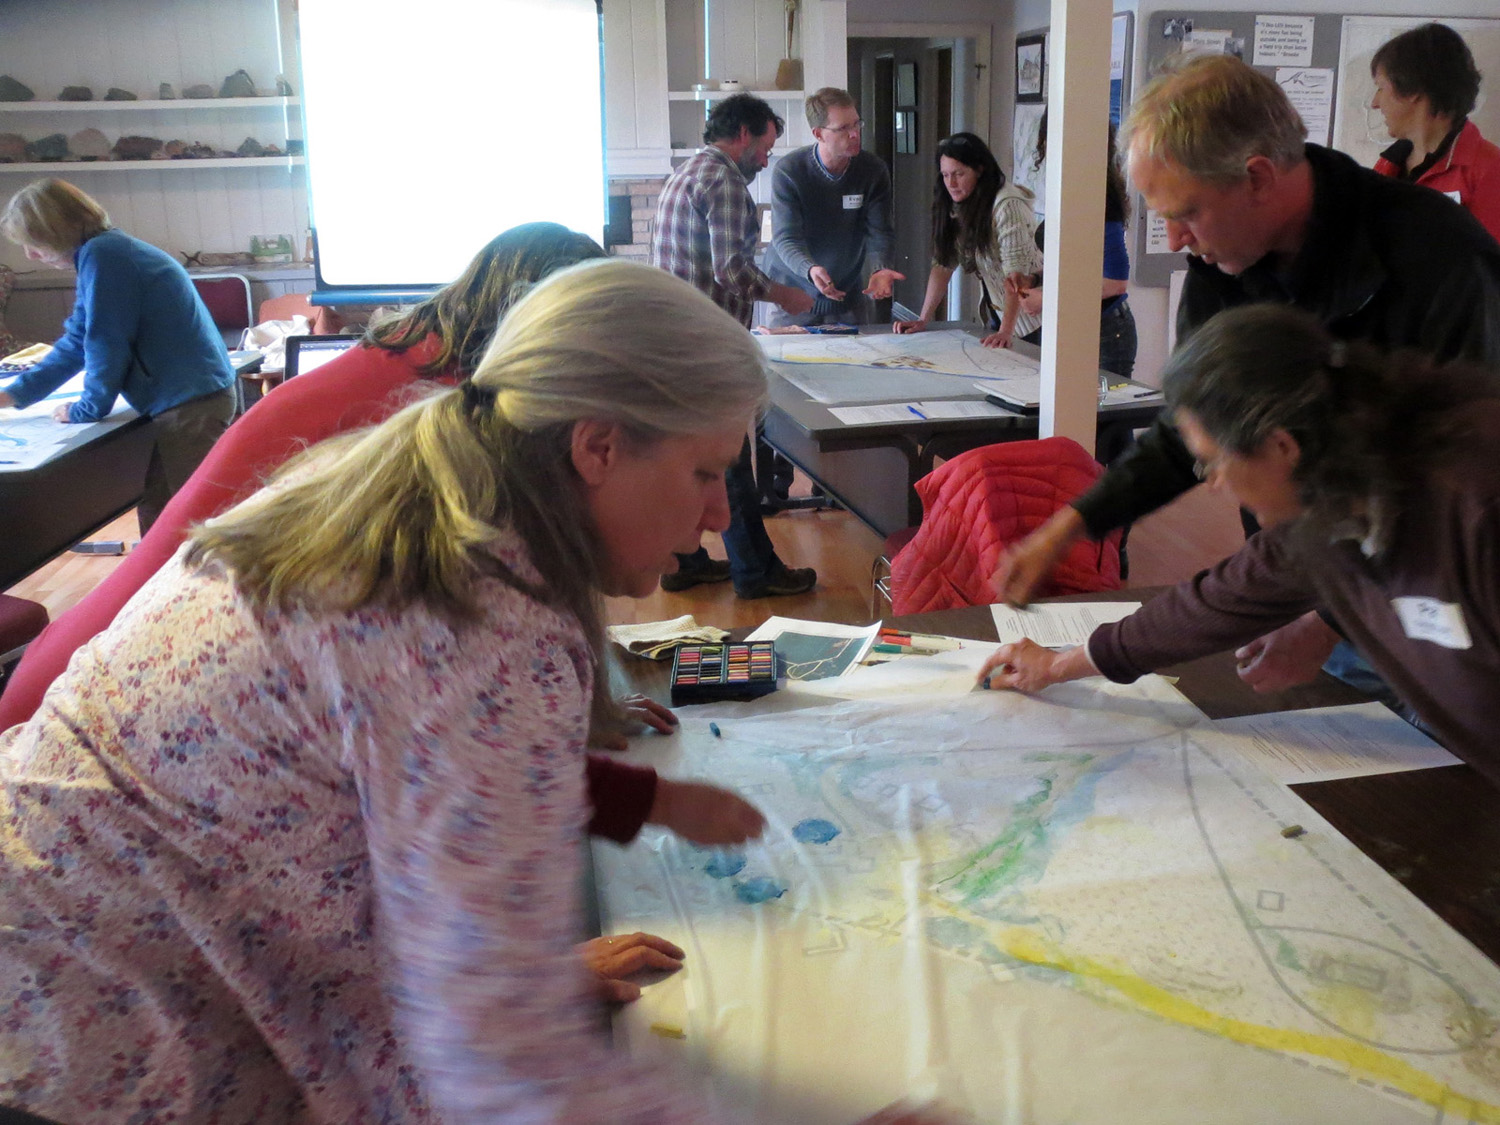 Lake Superior Stewardship Initiative (LSSI) members, designing (Nancy at upper right)